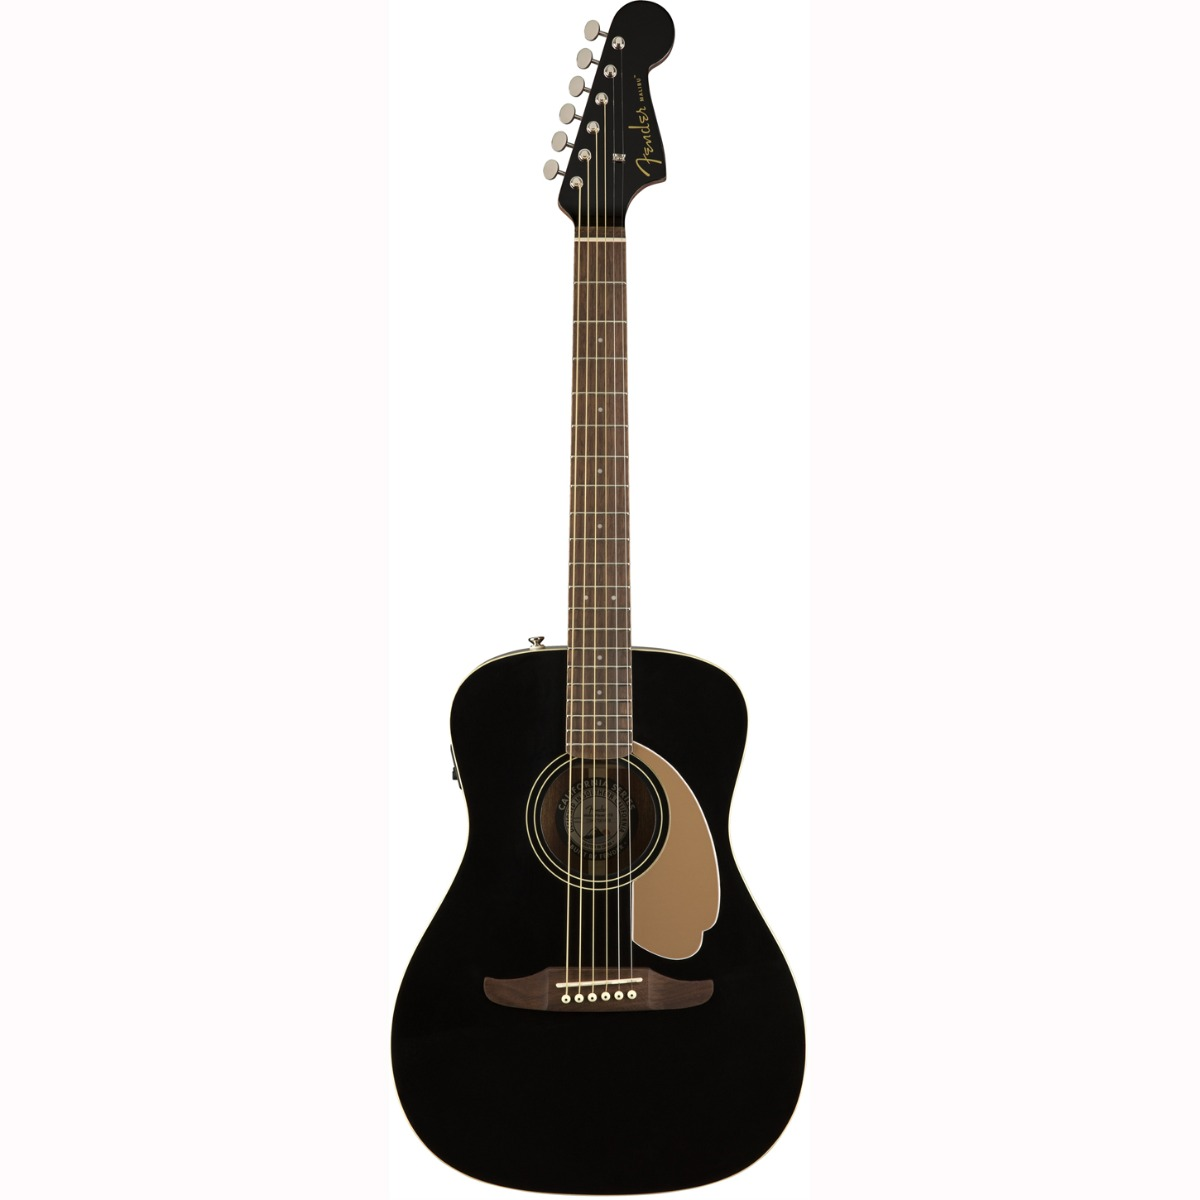 Fender Malibu Player, JTB western-guitar jetty black